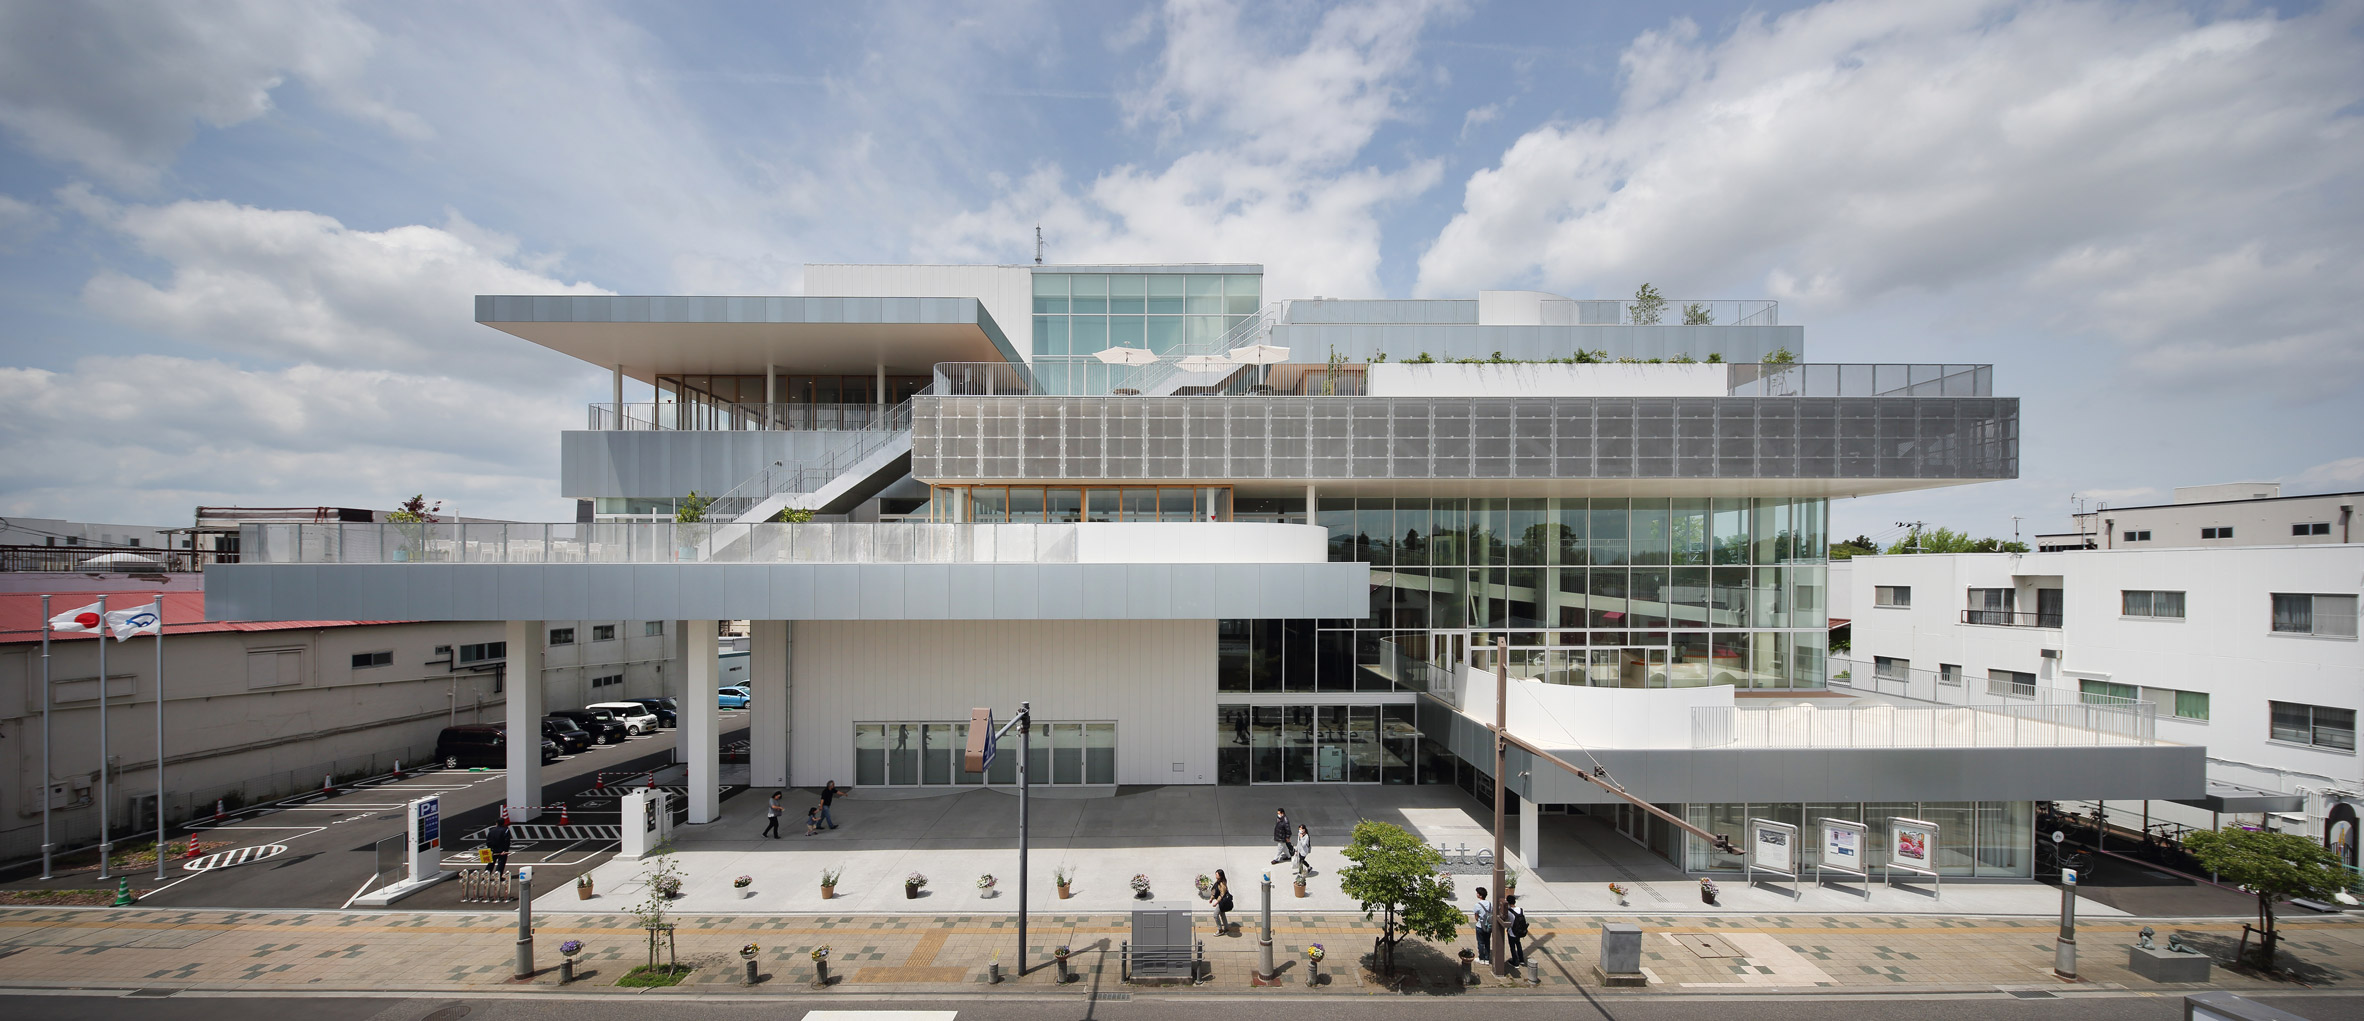 The exterior of The Sukagawa Community Center has a stacked design